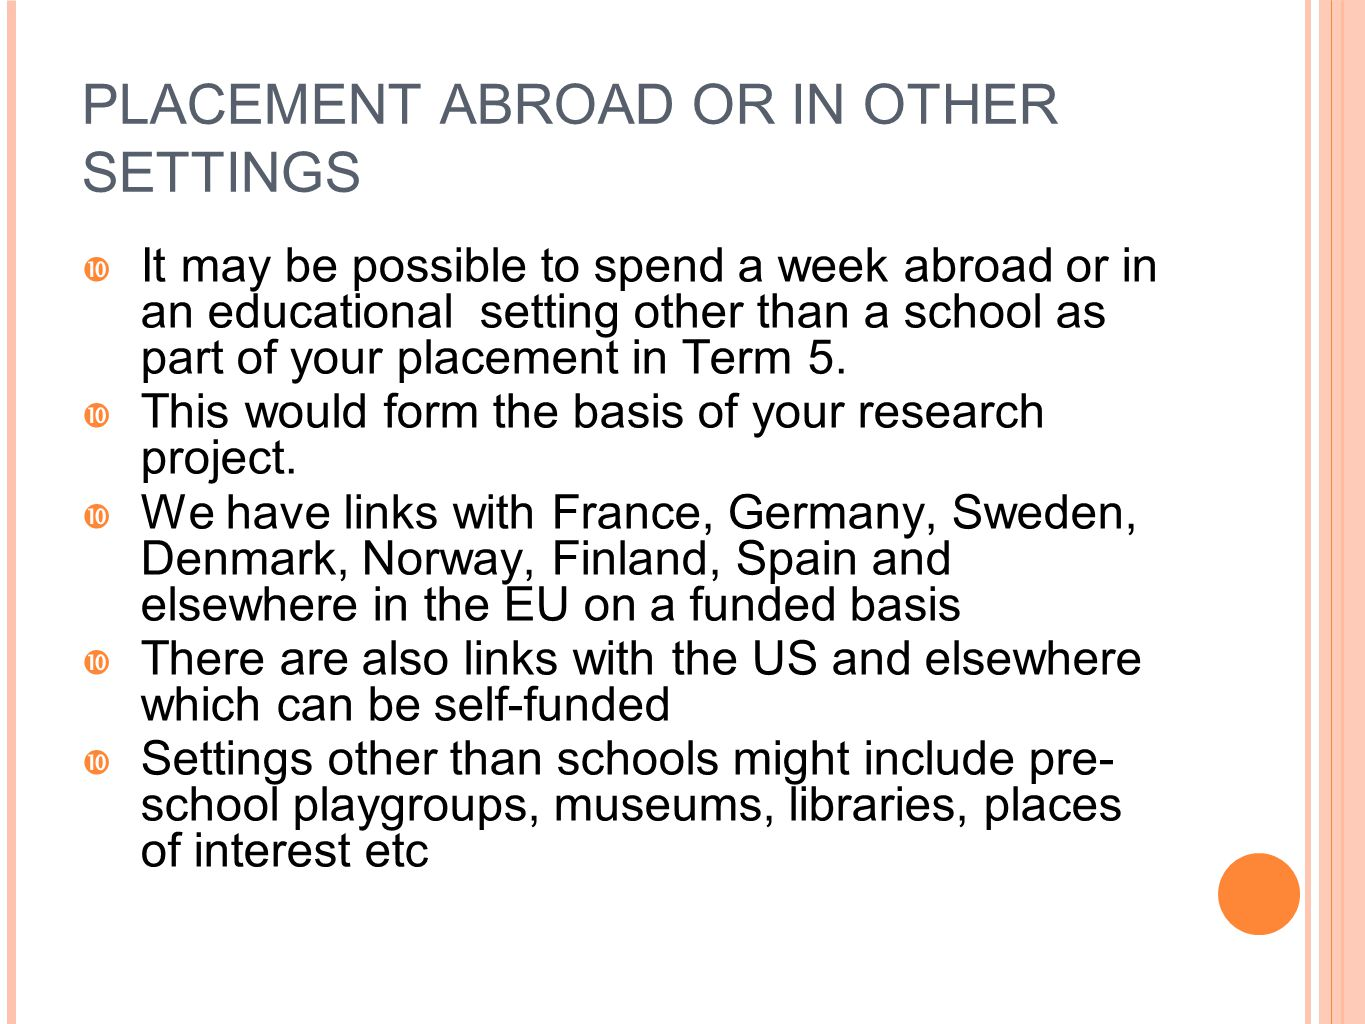 PLACEMENT ABROAD OR IN OTHER SETTINGS